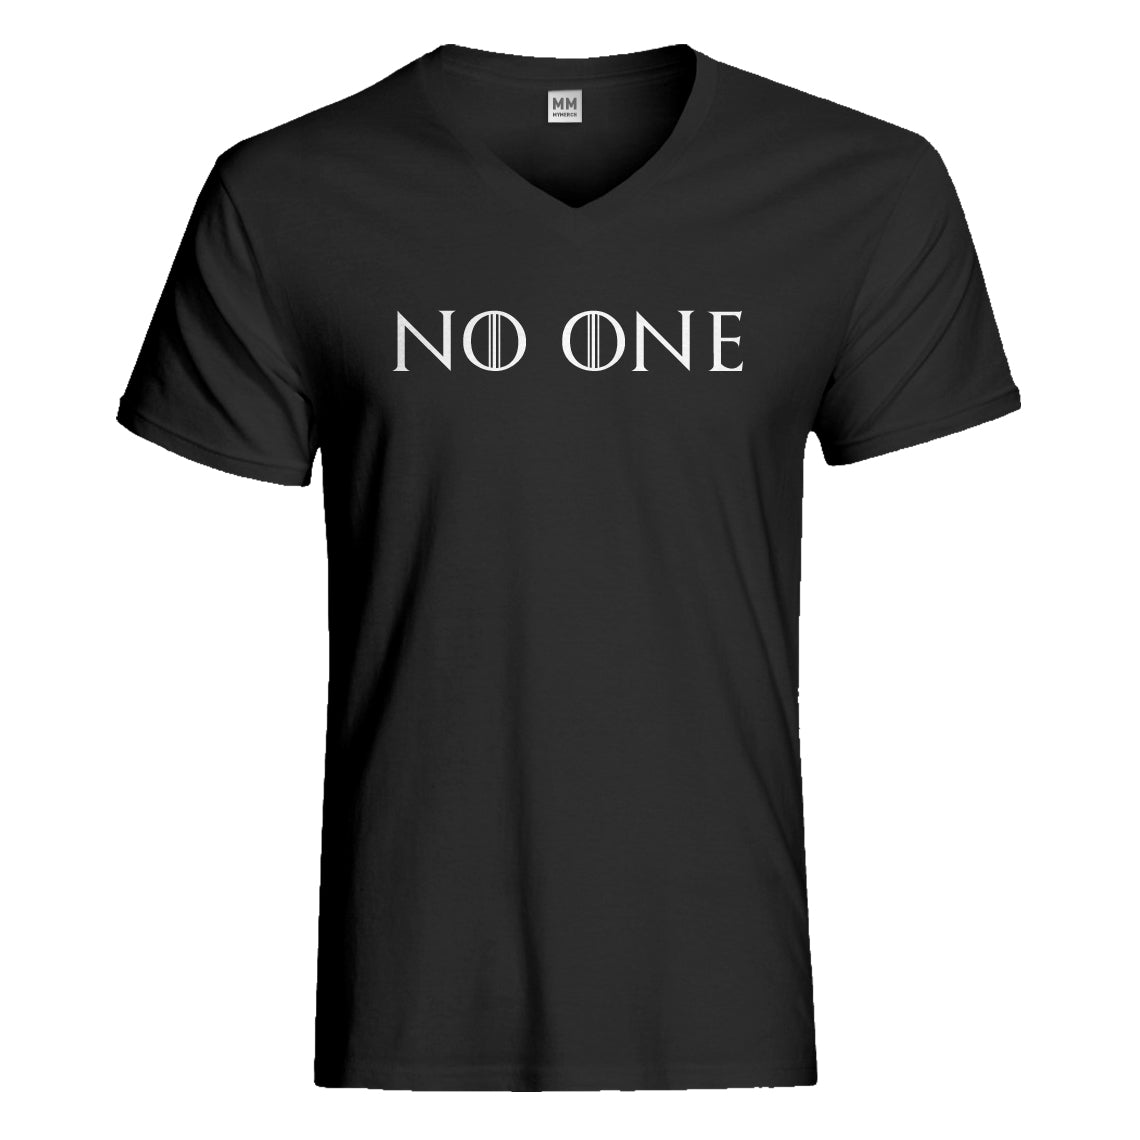 Mens No One Vneck T-shirt